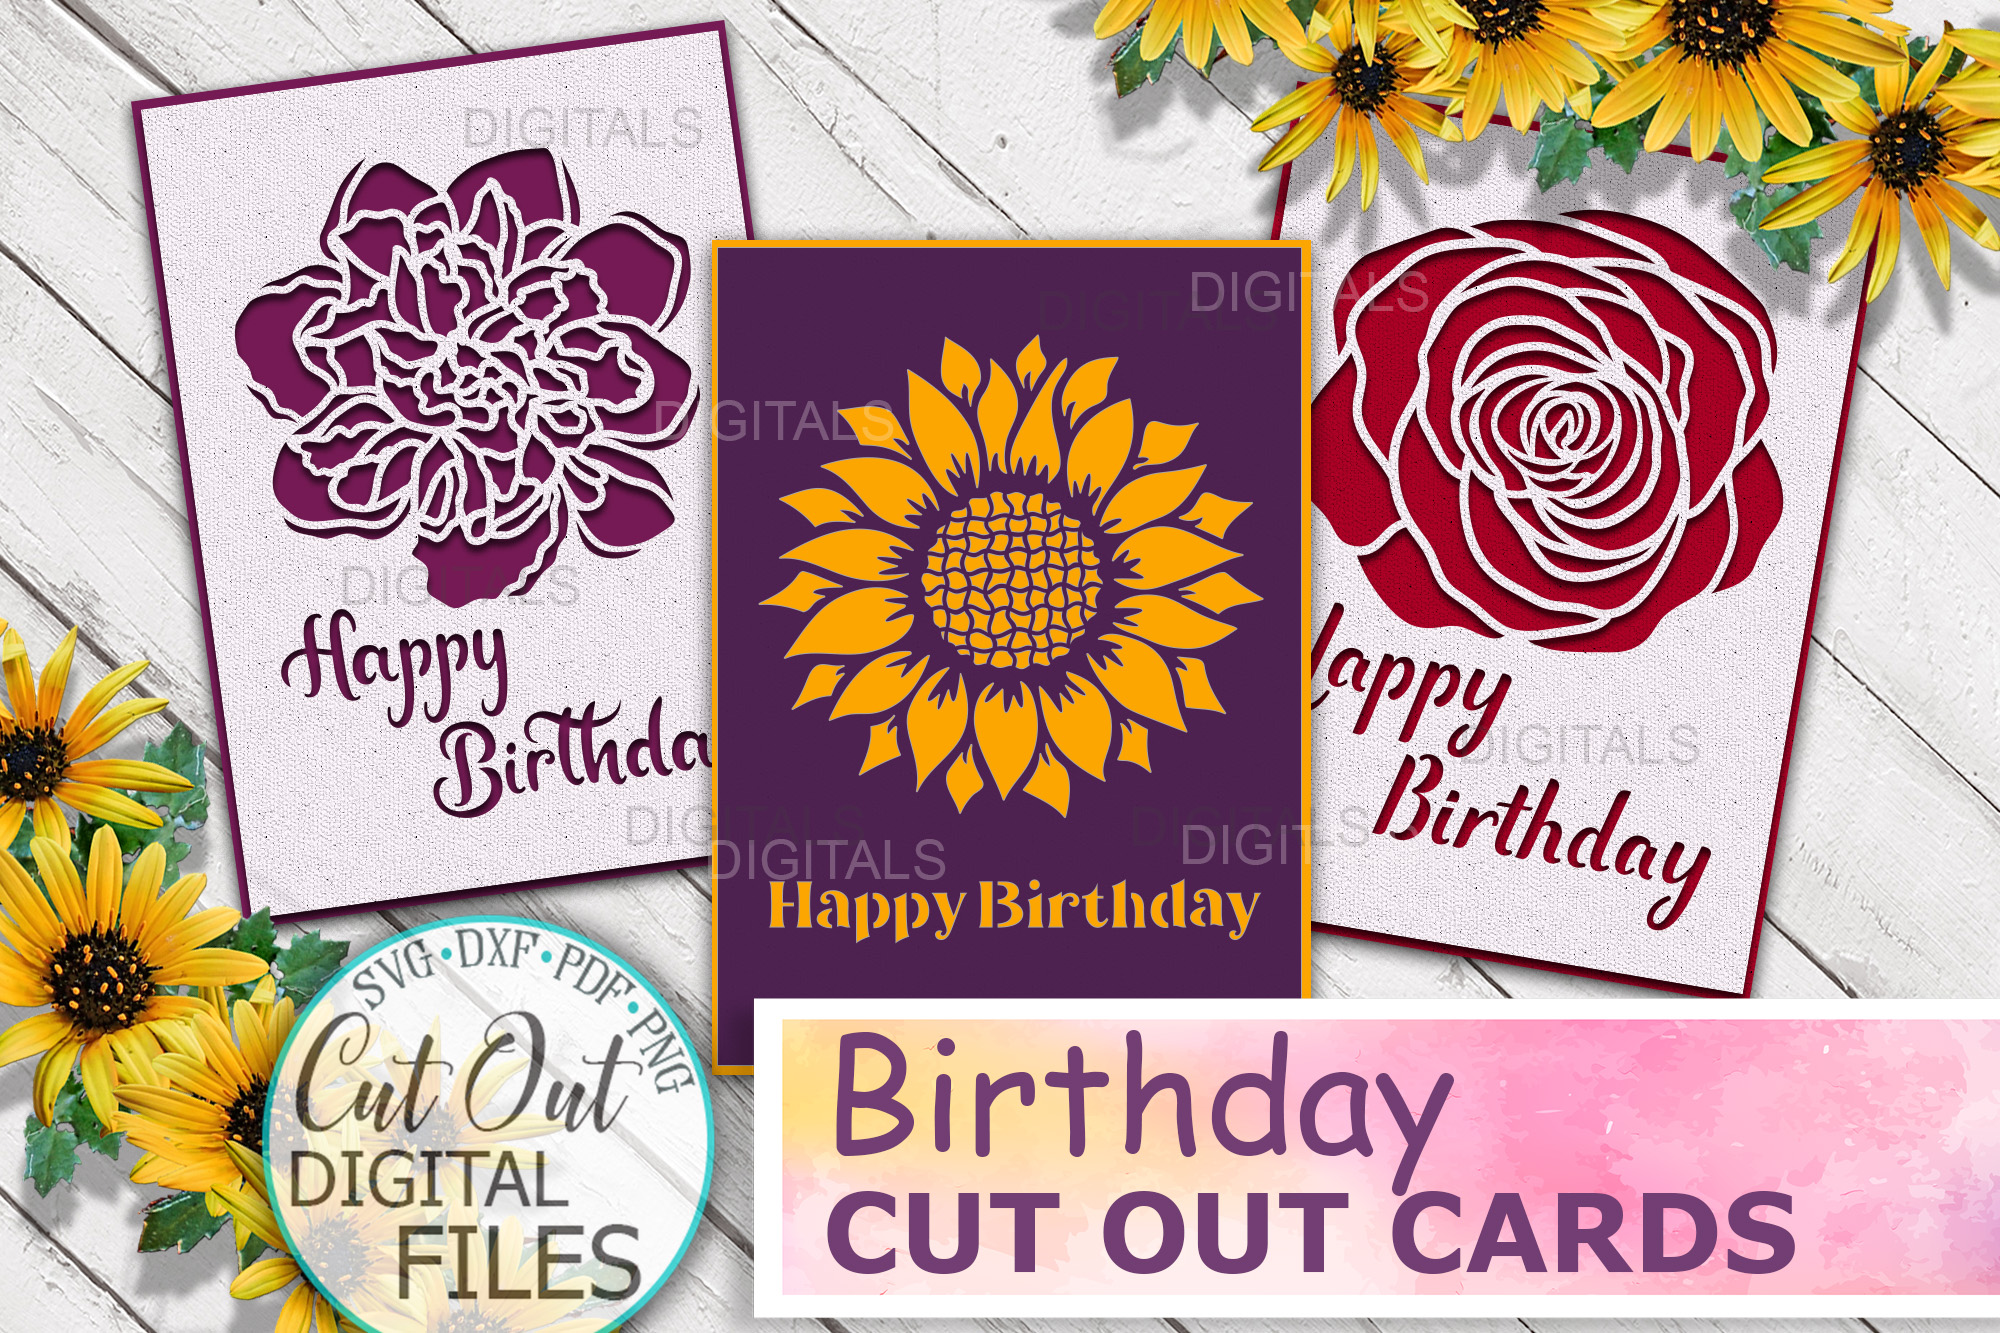 Happy Birthday Cards Bundle Svg Cut out SVG File